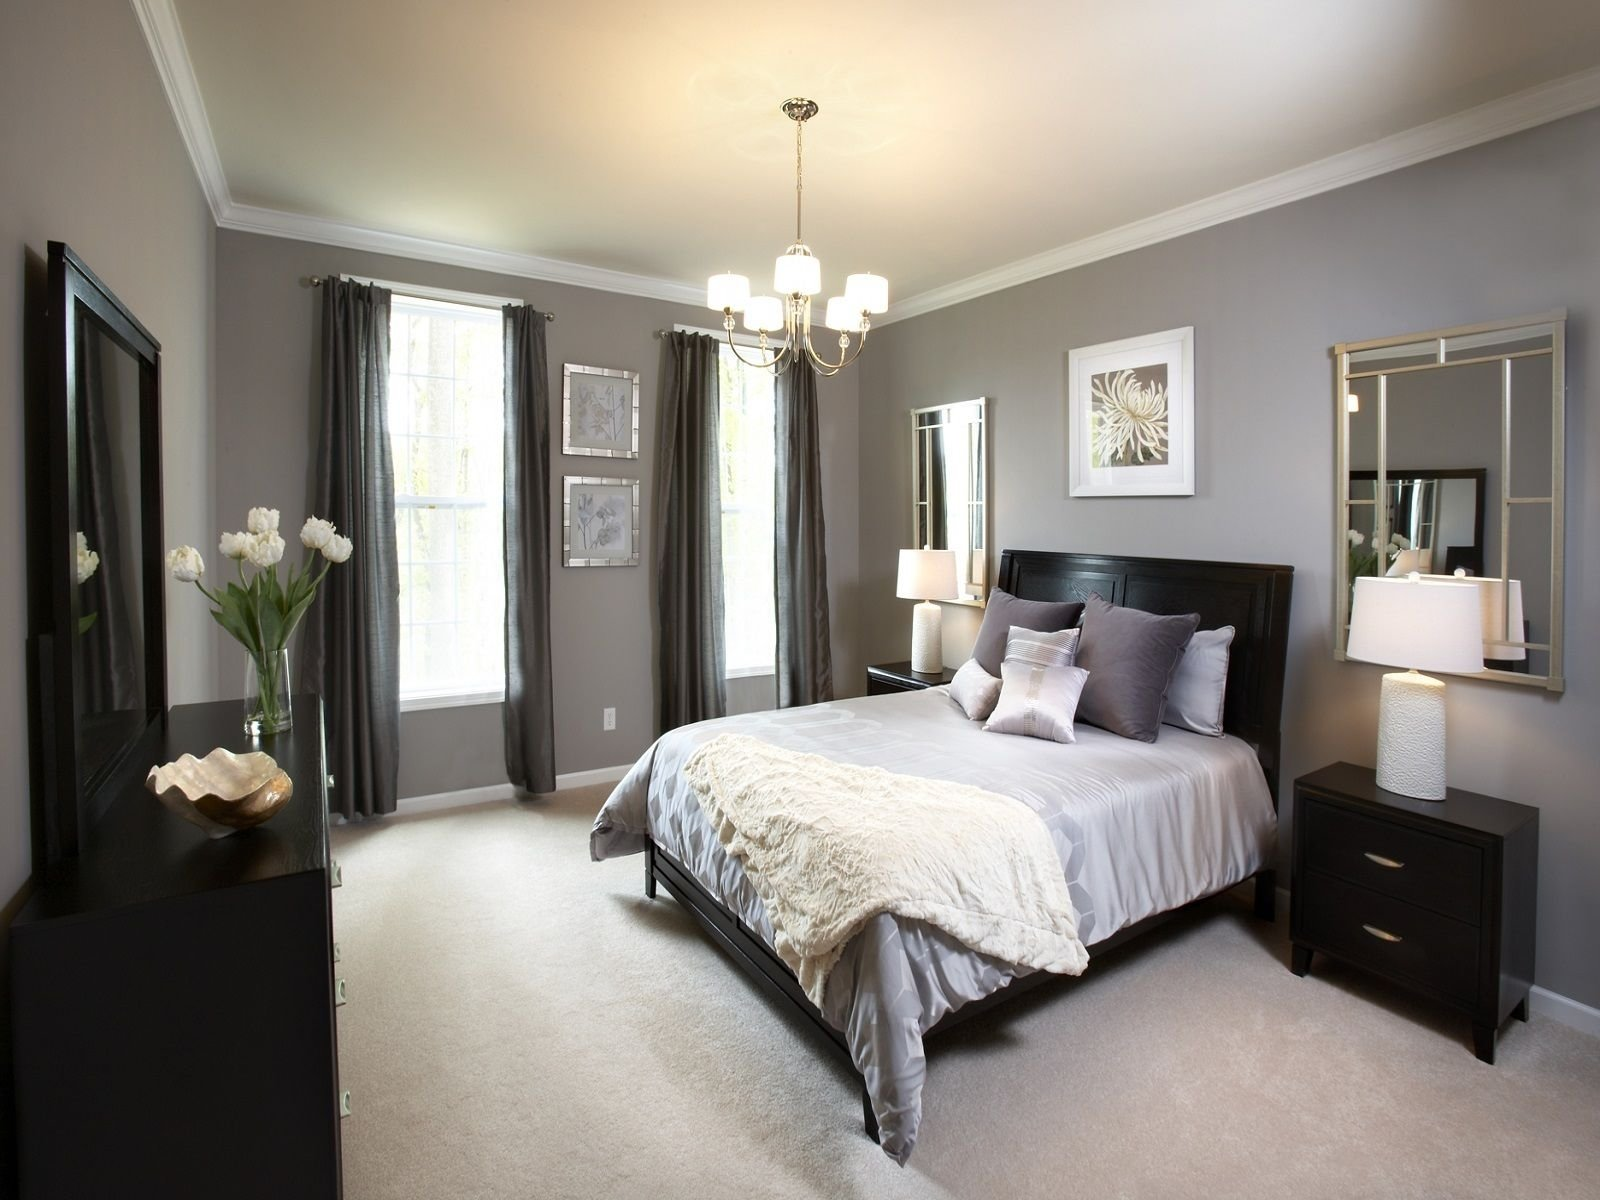 10 Pretty Paint Color Ideas For Bedrooms bedroompaint color ideas for master bedroom buffet with mirror 2021